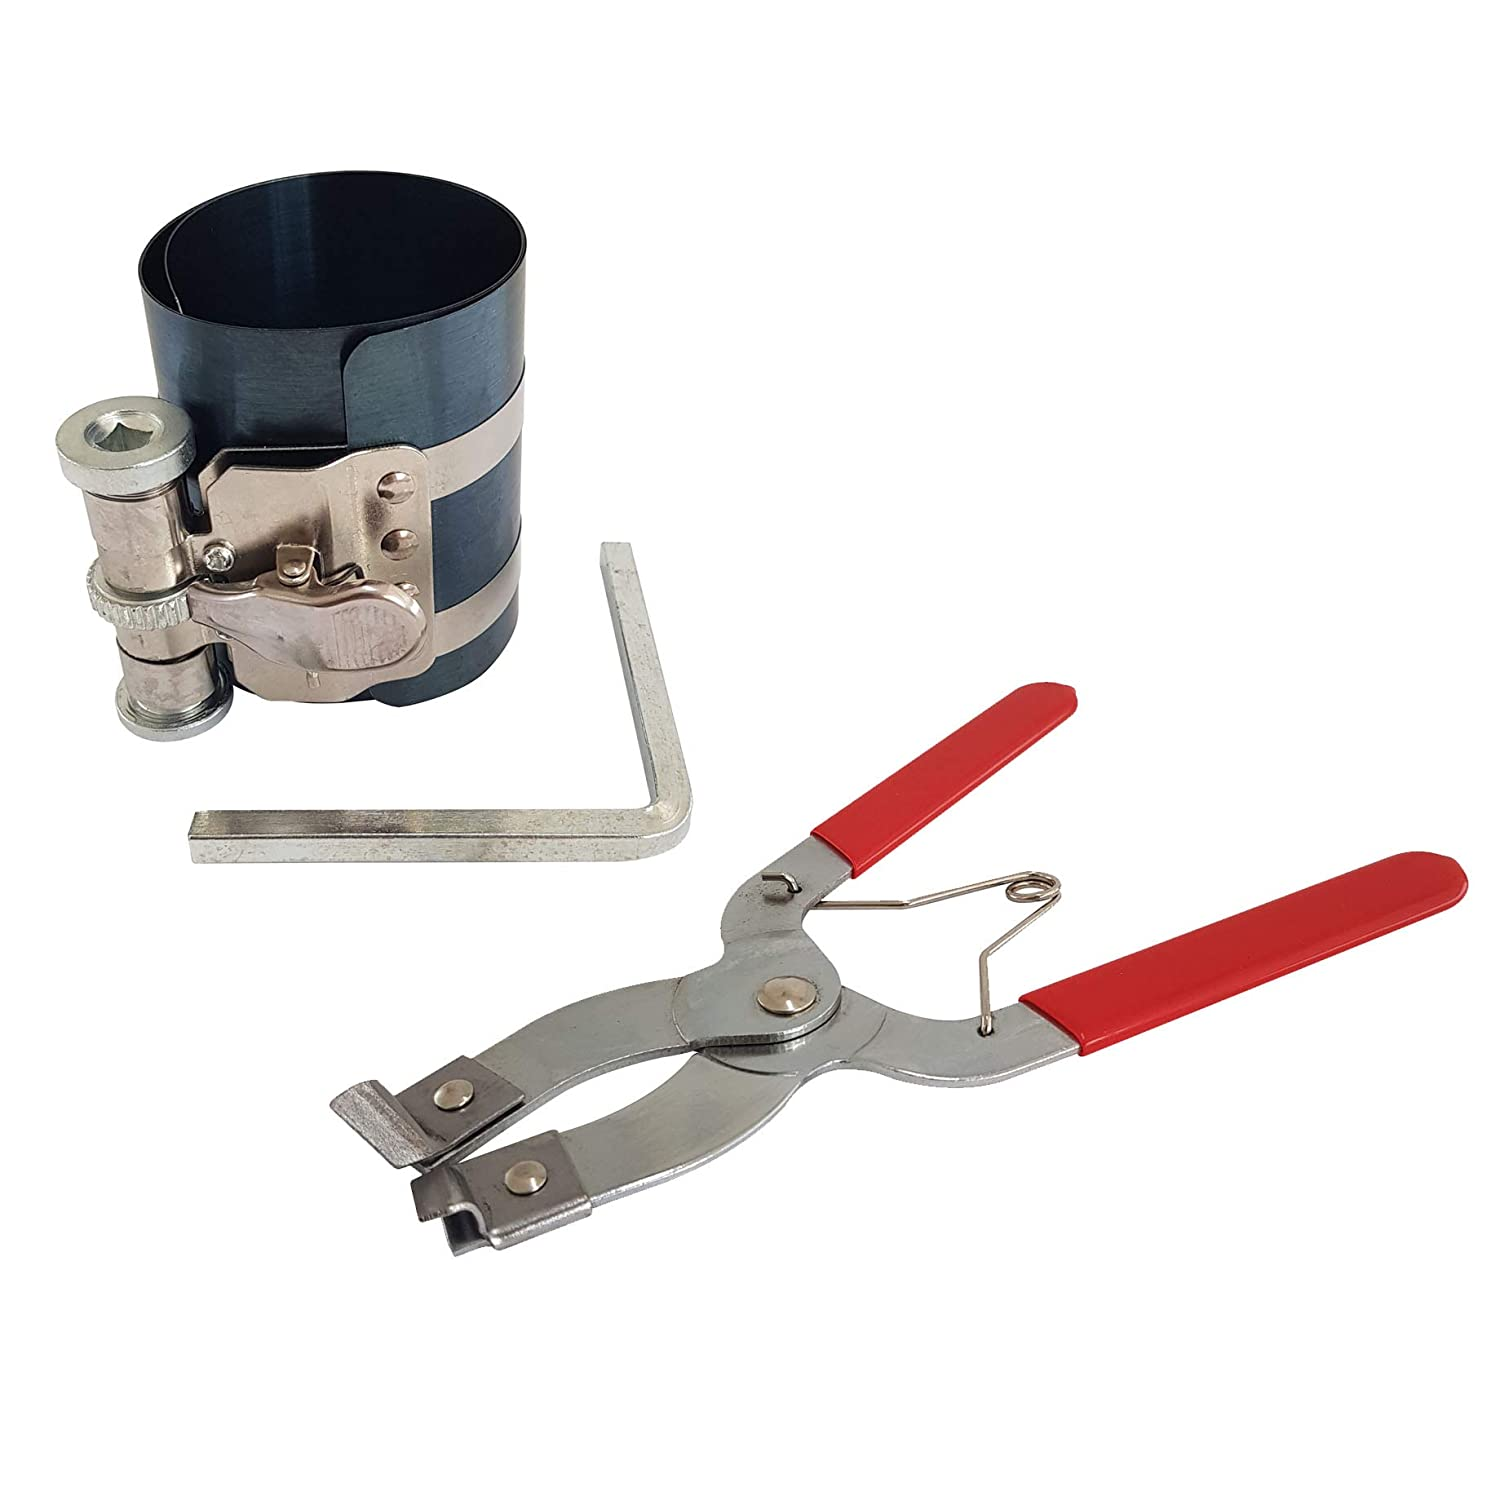 Voche/® Piston Ring Compressor Stainless Steel Clamp /& Piston Ring Plier Set 50-125mm Stainless Steel Compressor Clamp